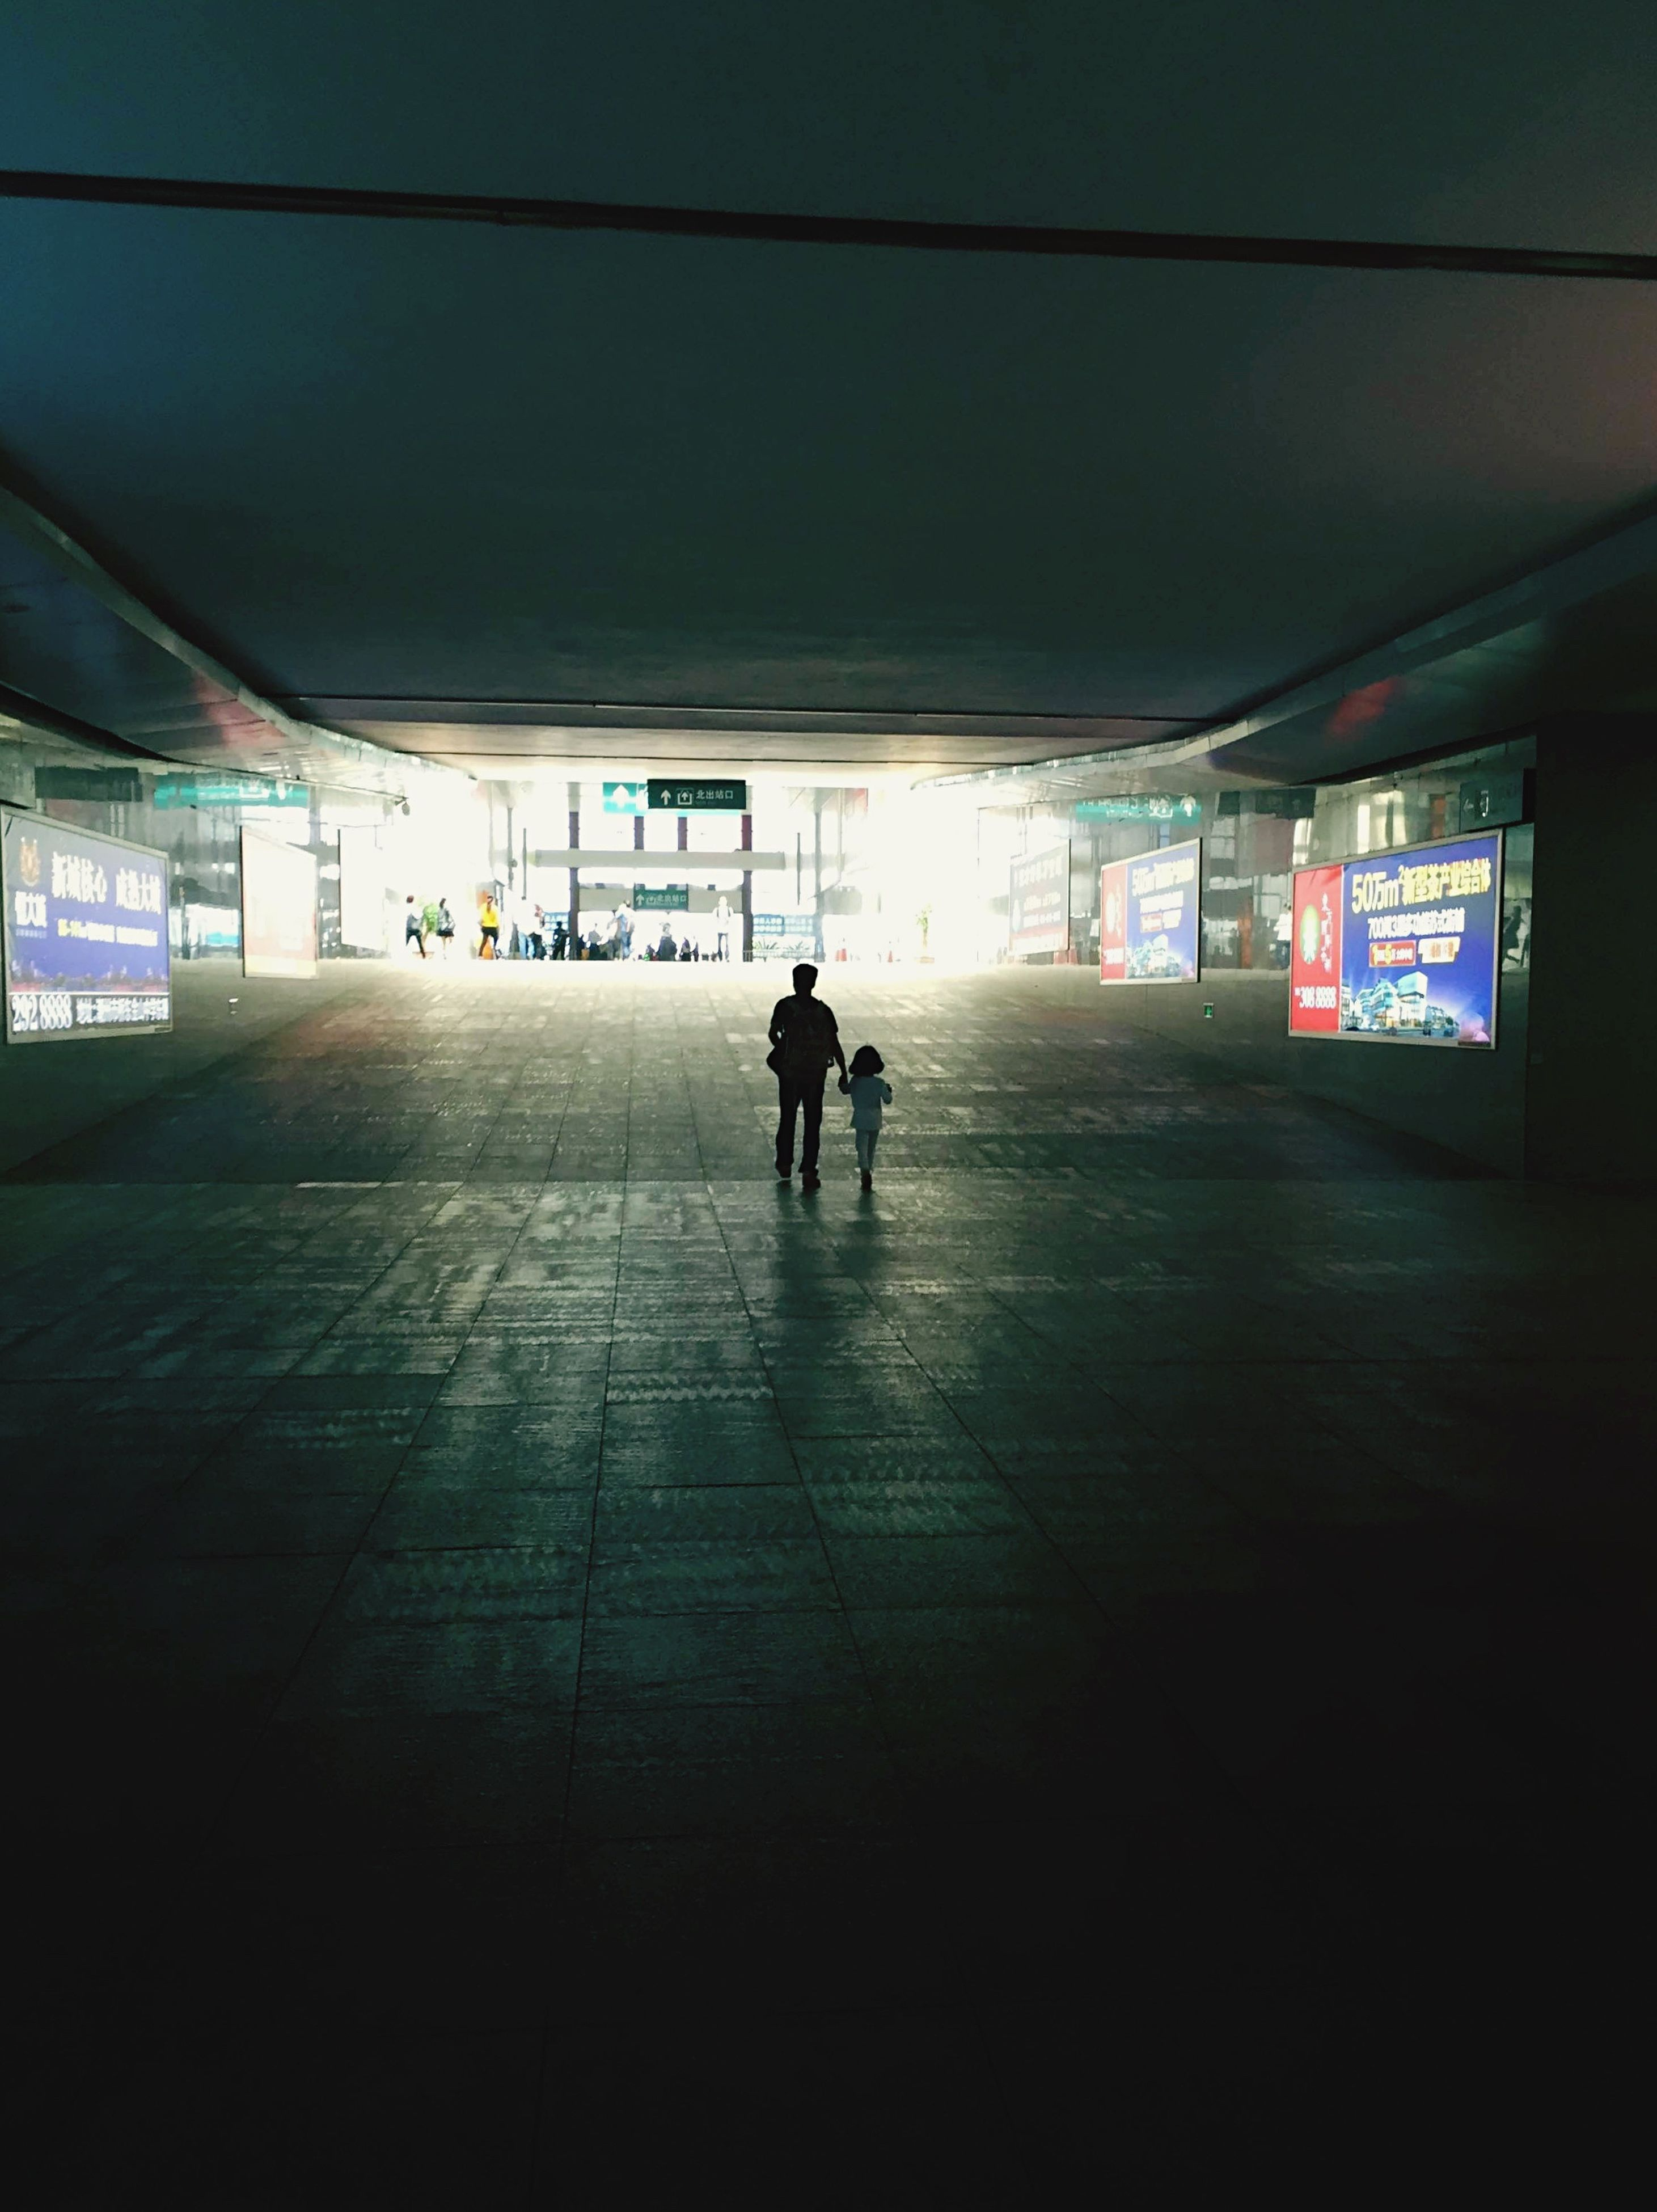 indoors, full length, men, illuminated, walking, lifestyles, ceiling, rear view, tunnel, person, the way forward, subway, transportation, leisure activity, architecture, built structure, silhouette, subway station